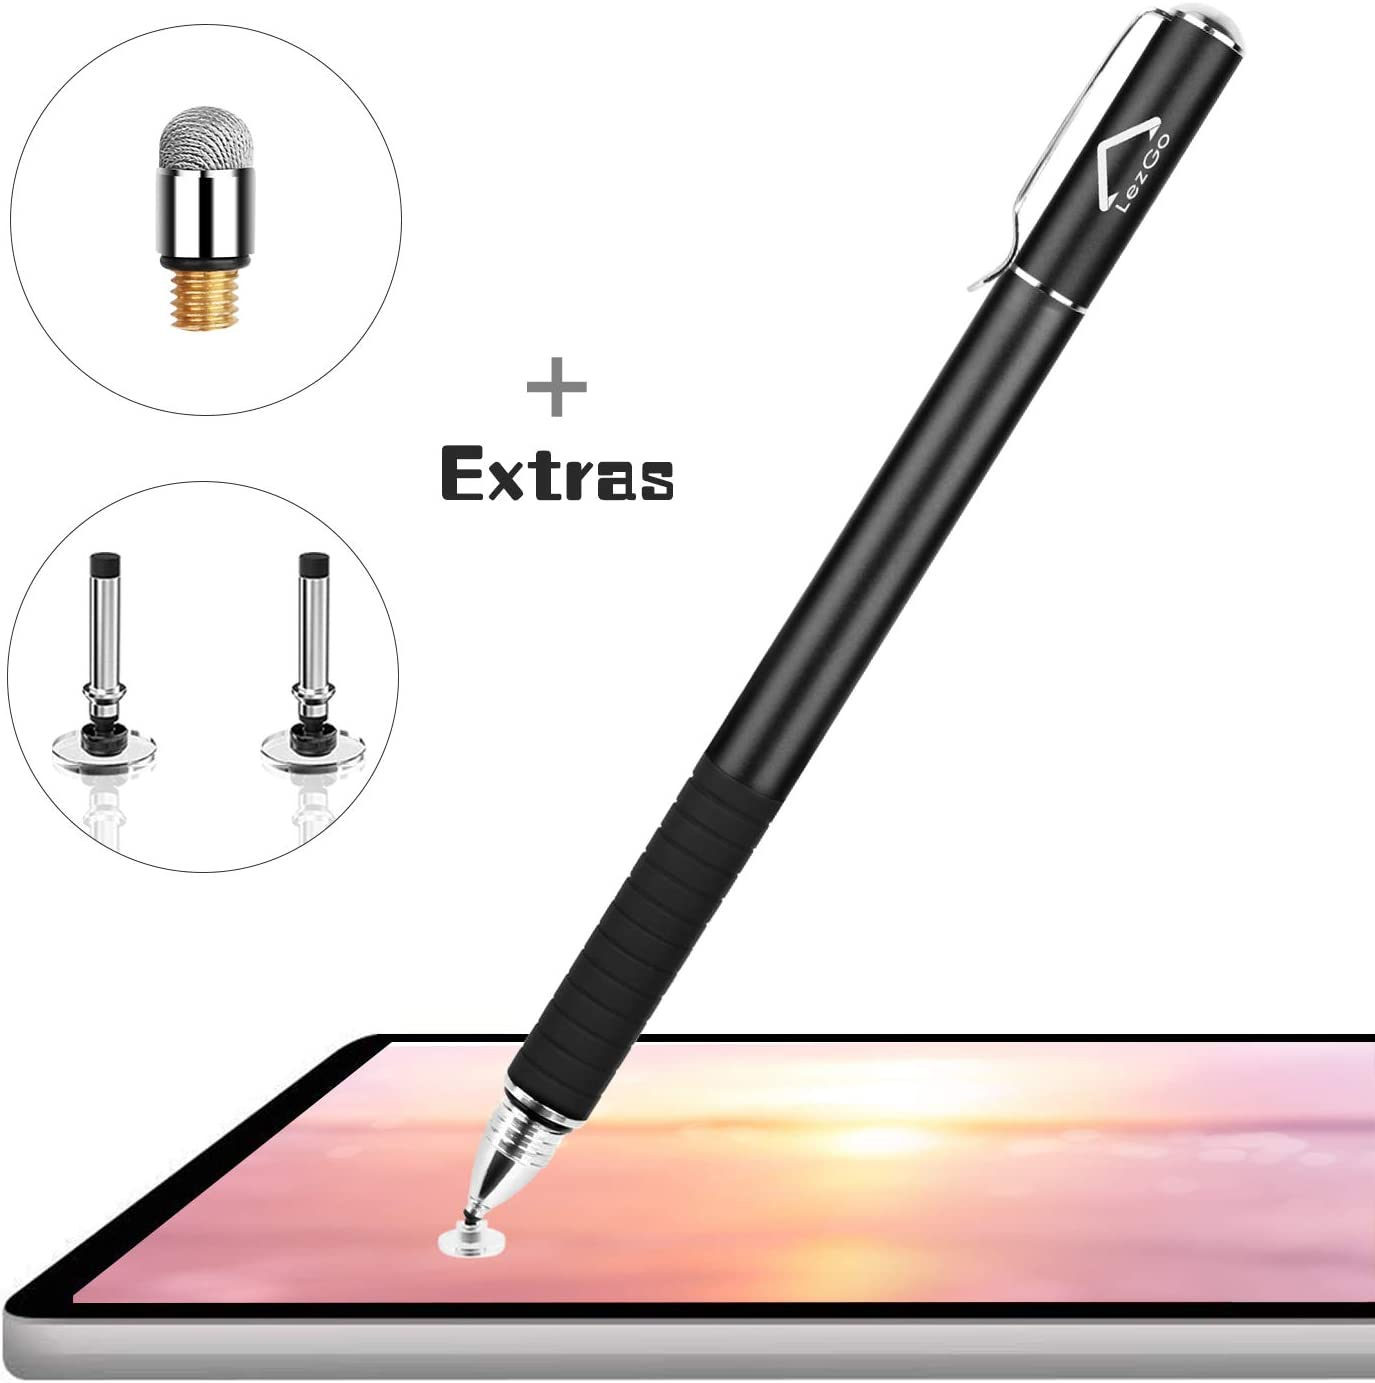 Lezgo Stylus Pens for Touch Screens, 2-in-1 Universal Disc Stylus for iPad, iPhone and All Other Capacitive Cellphones, Tablets, Laptops Bundle with 3 Replacement Tips (Black)